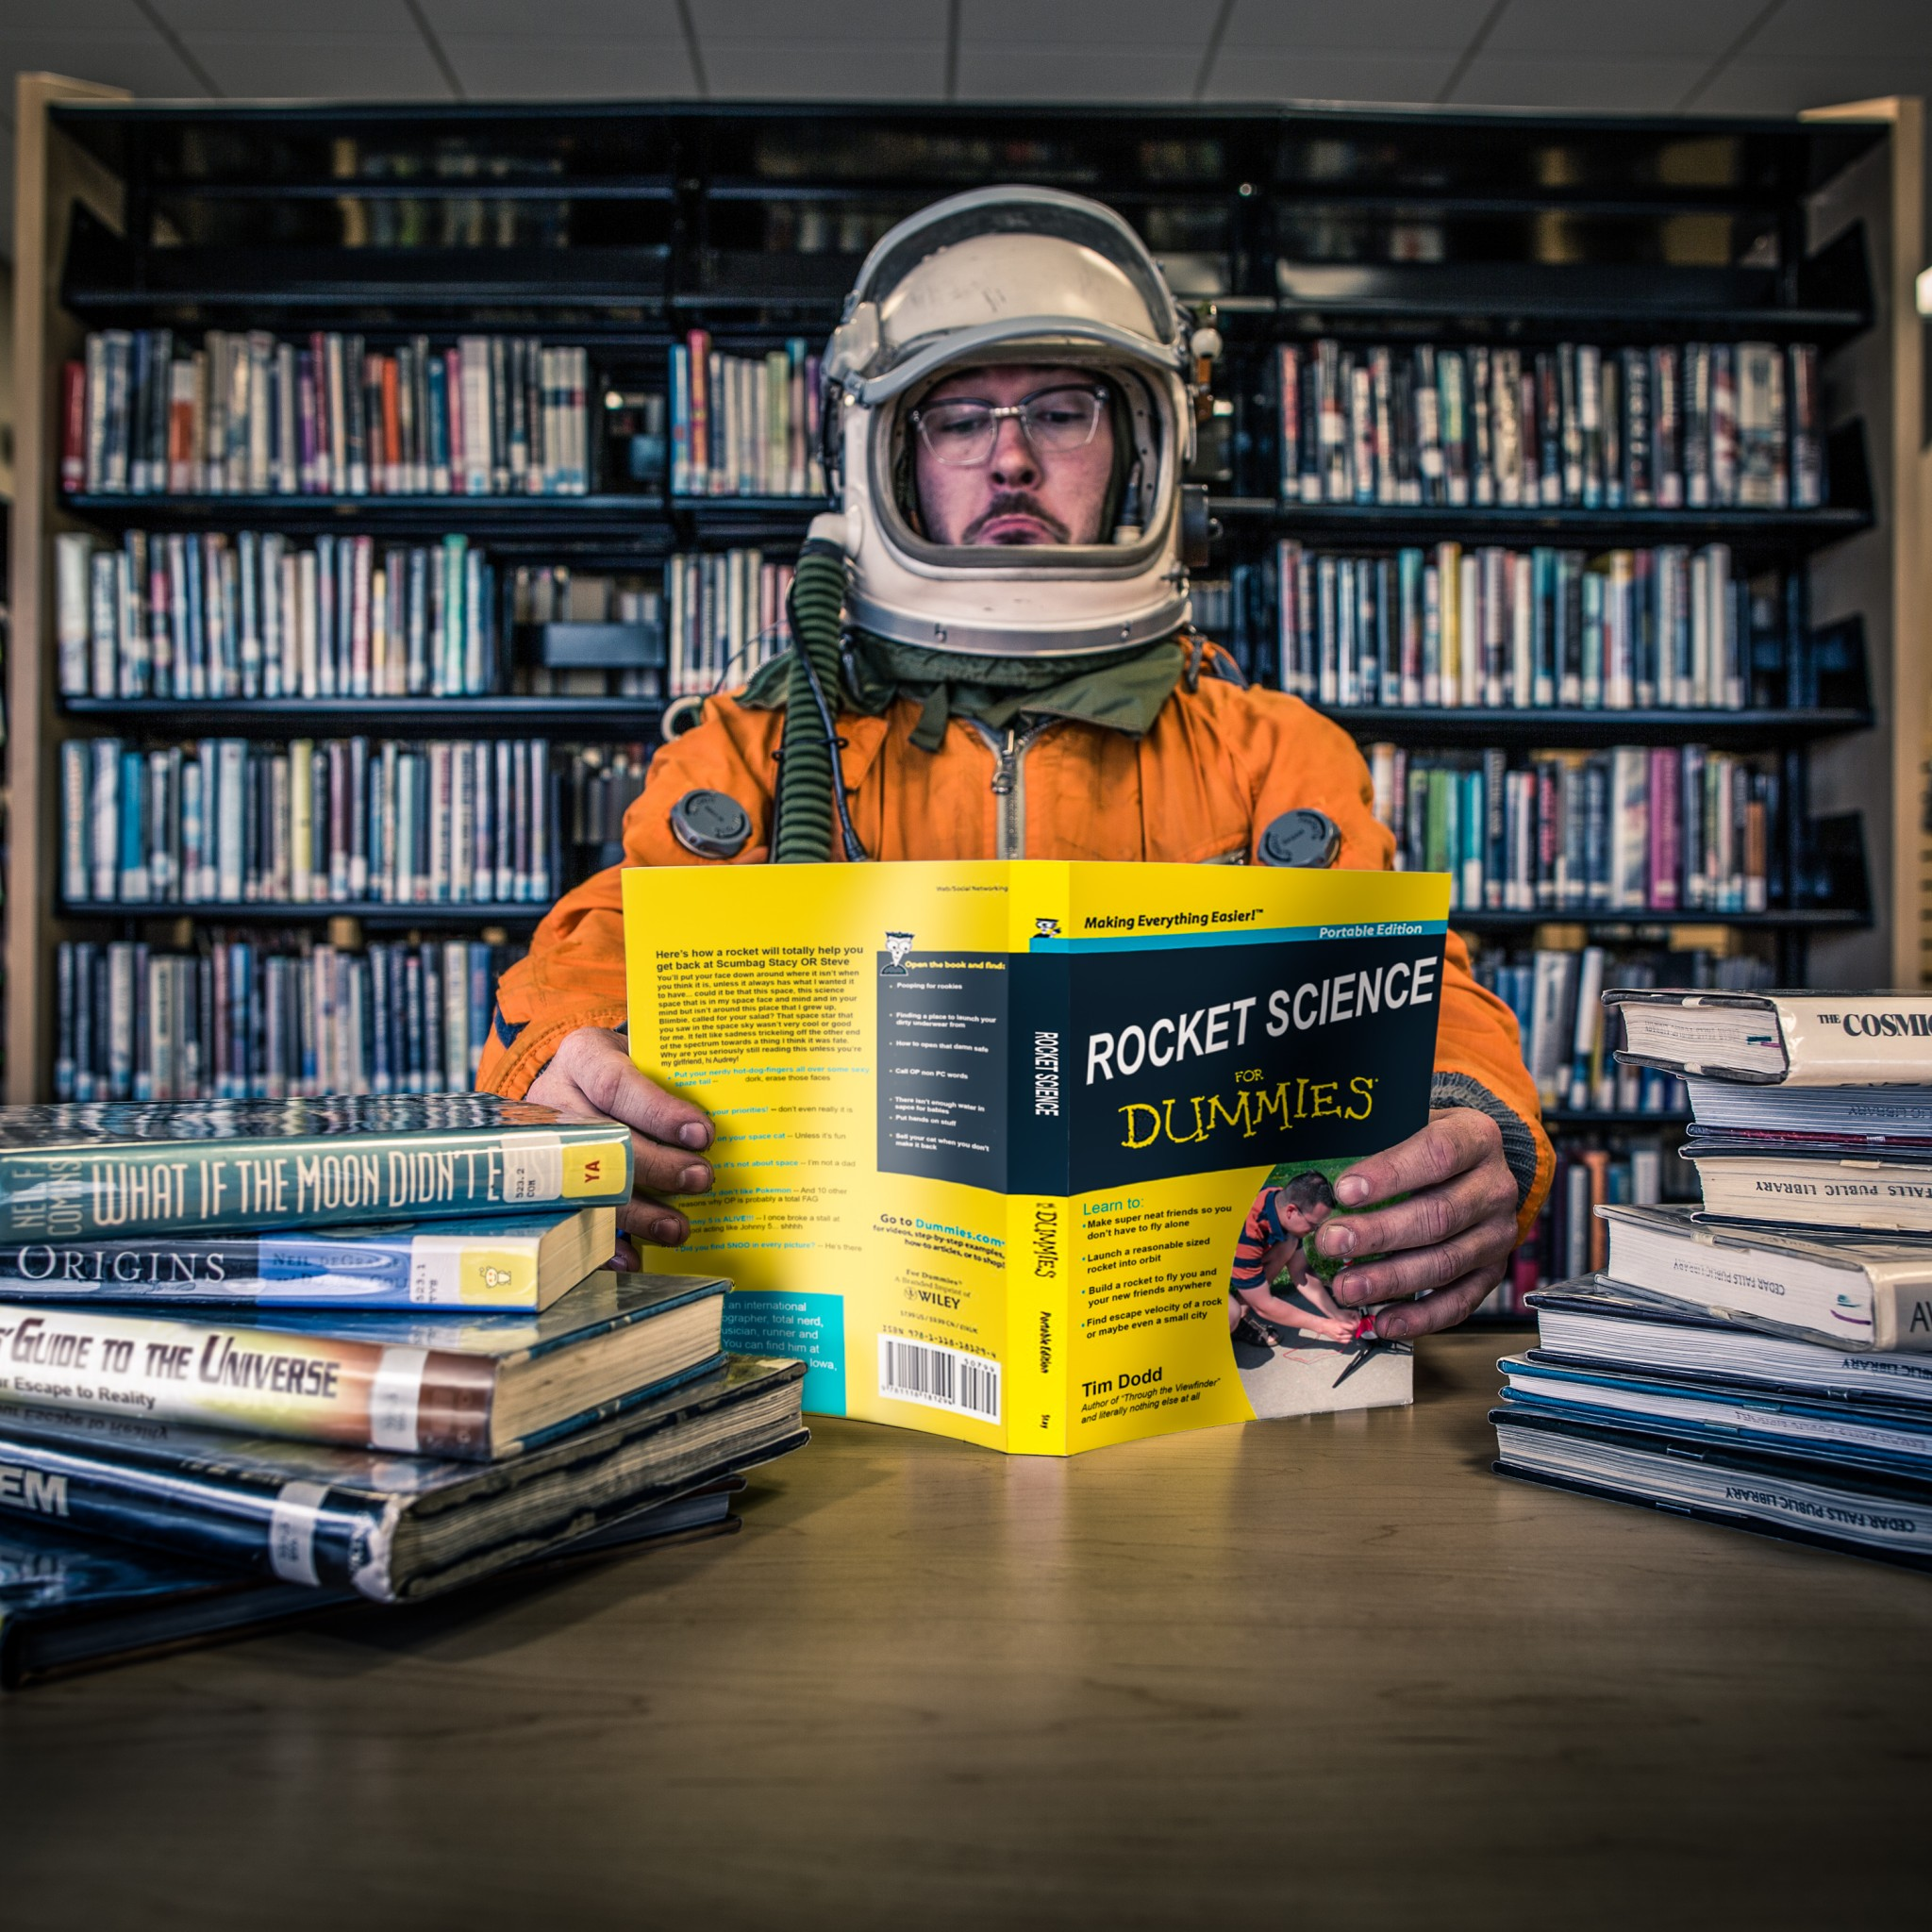 Everyday Astronaut silly space shuttle cosmonaut kosmonaut russian space suit spacesuit humor space galaxies moon by Tim Dodd Photography